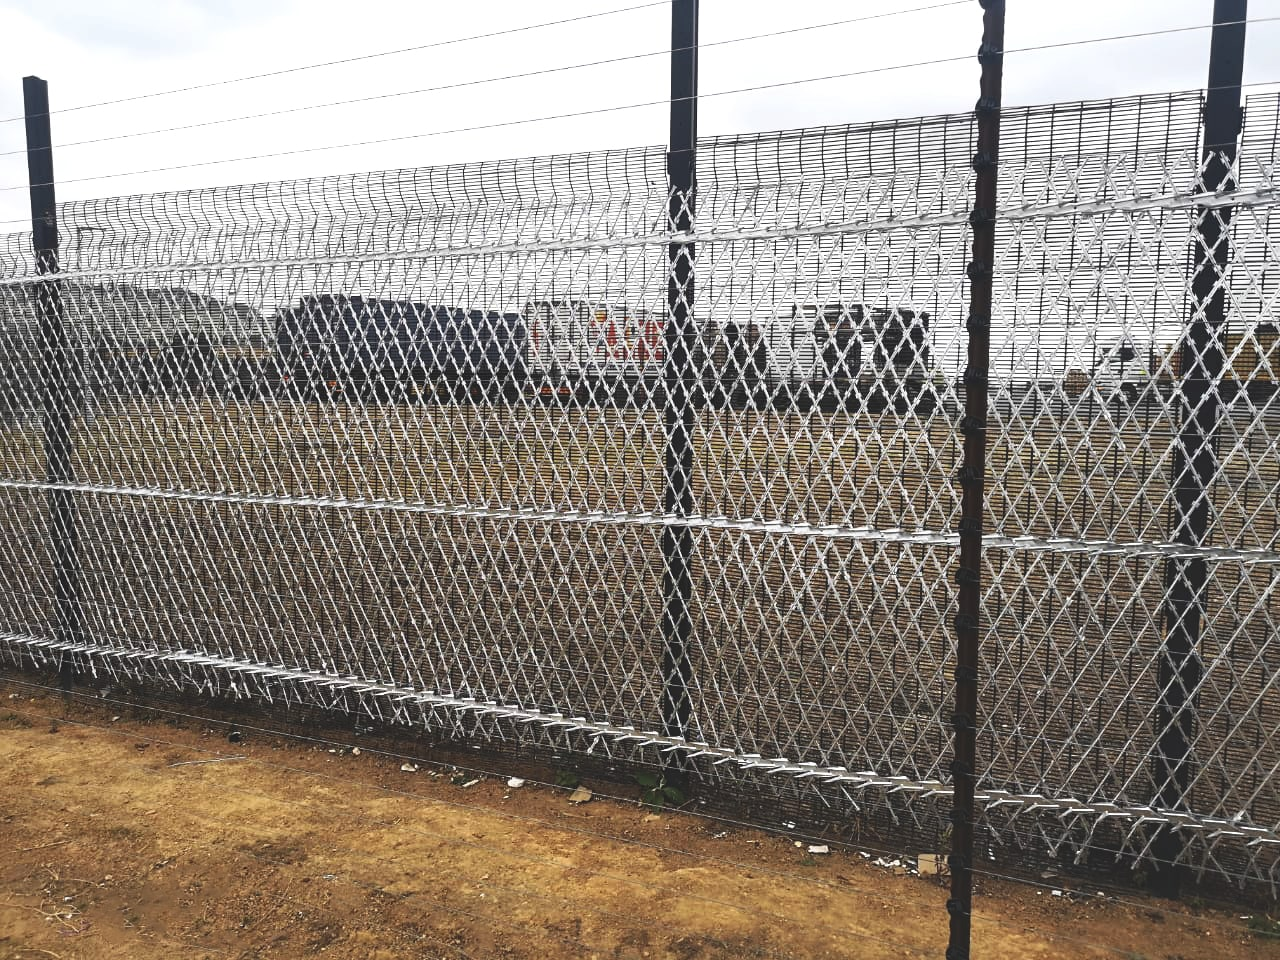 Clear view fencing reinforced with razor mesh spikes and electric fencing topping